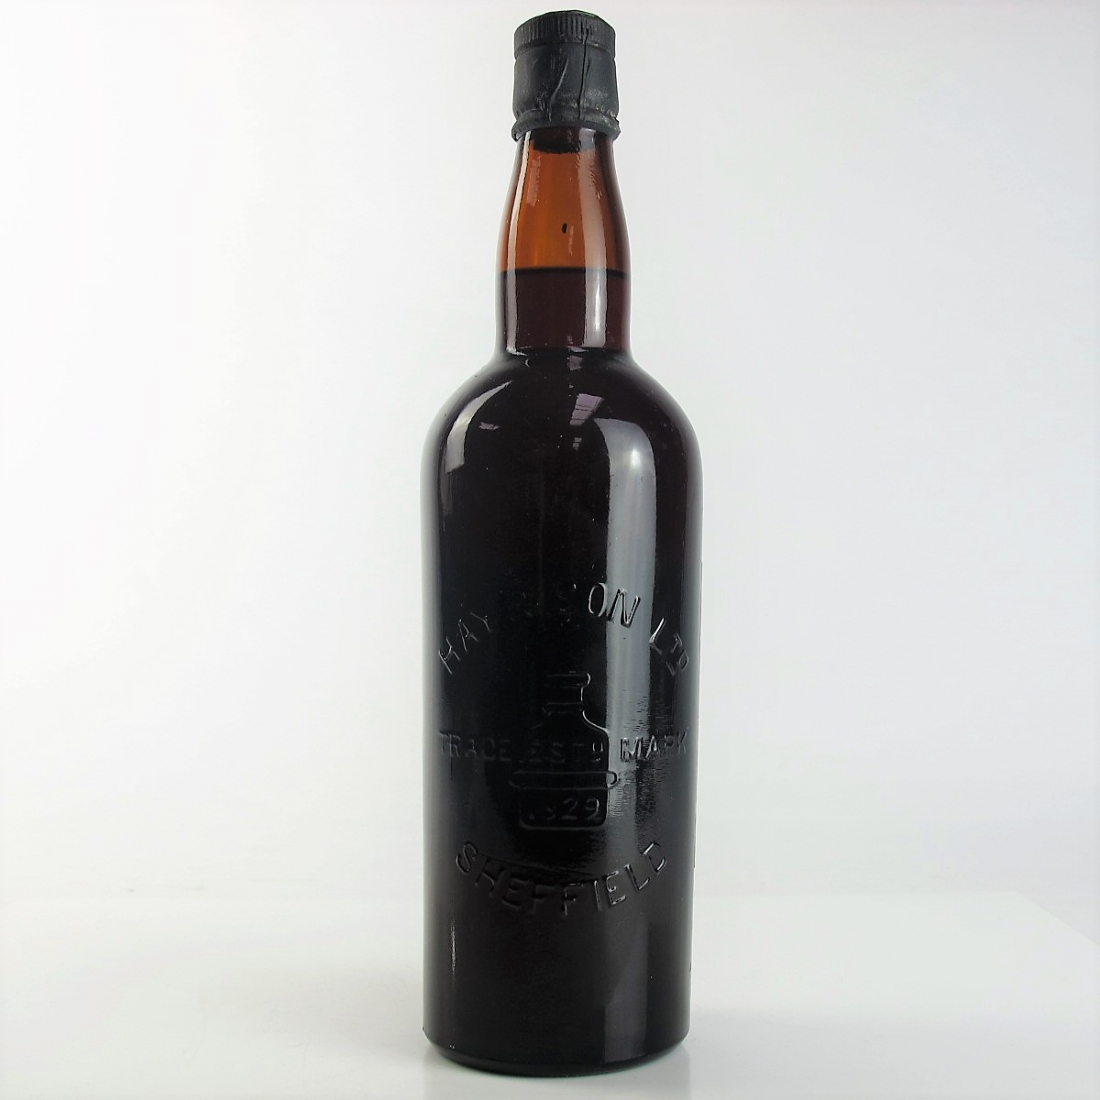 Hay & Son Vintage Character Port